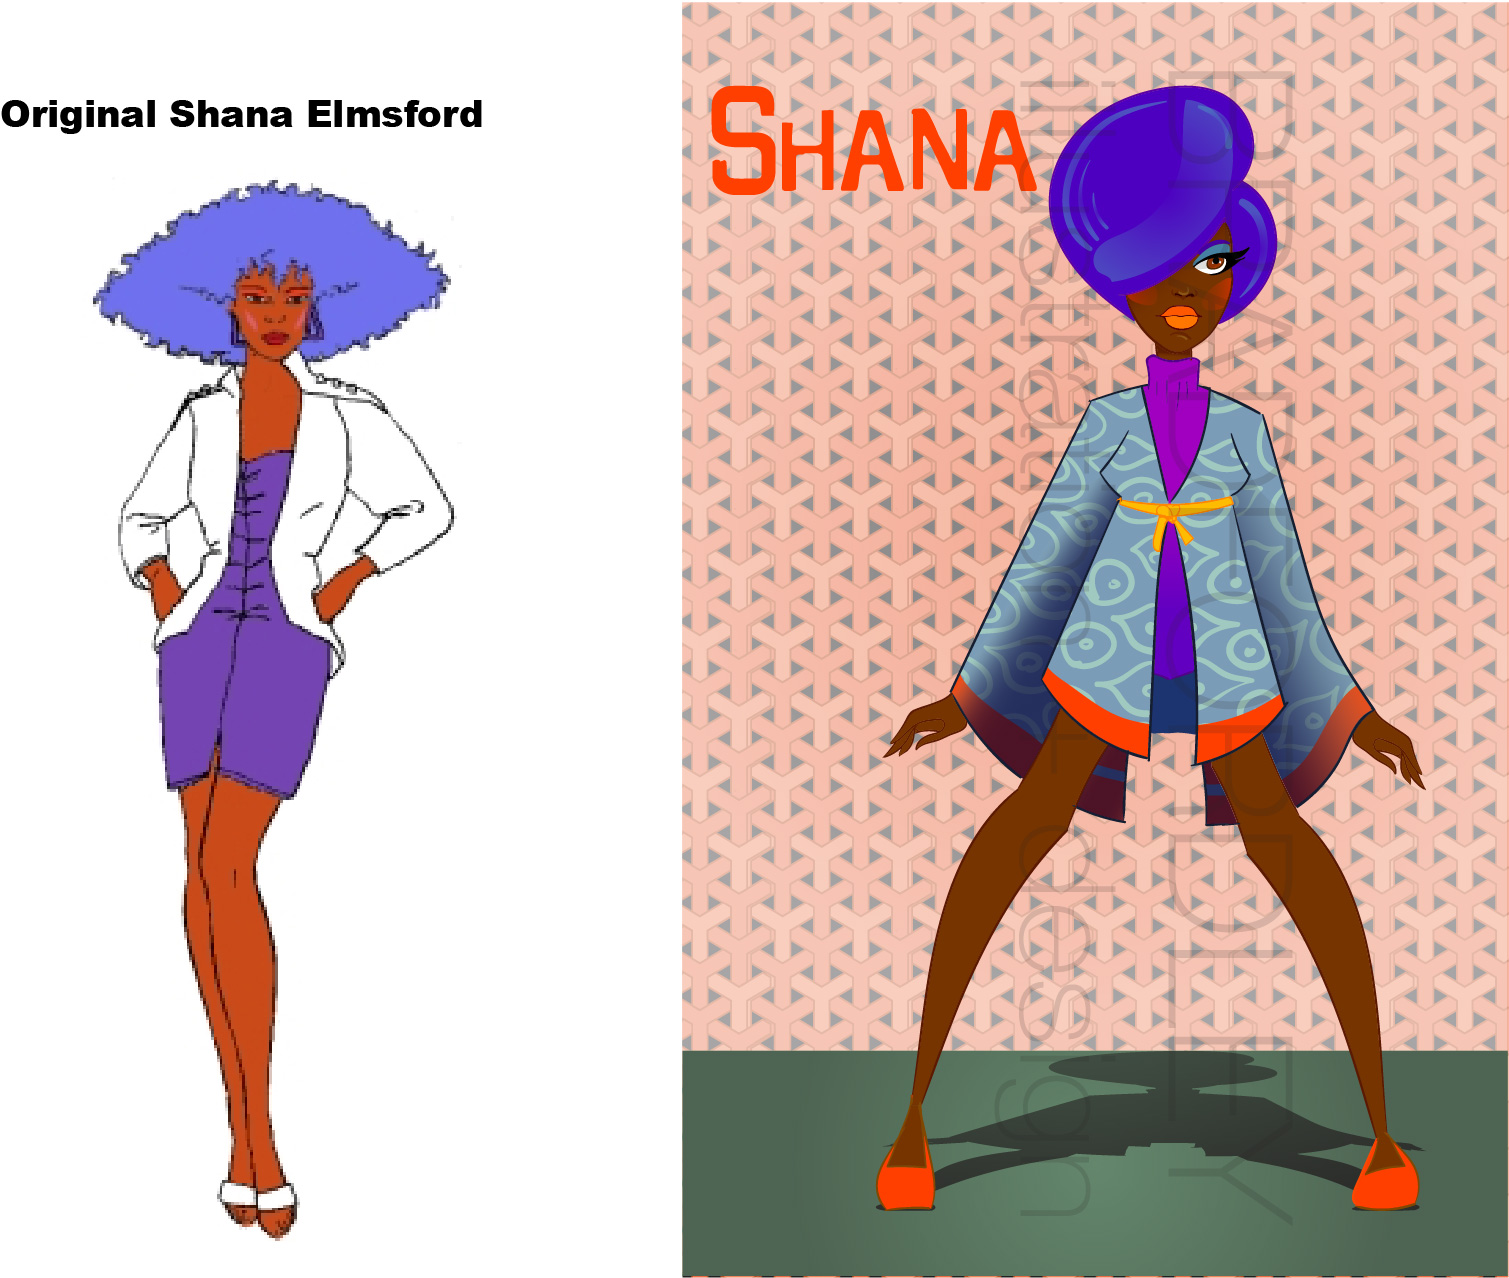 Next up, Shana Elmsford, the fashion mogul and drummer for Jem and the Holograms (later the bass guitarist upon her return, she leaves for a bit to pursue her fashion design dreams and they replace her, the DRAMA!!!) For a fashion designer, she often wore some drab looks, but I always loved her hair. I wanted to make her one of the more fashion forward with a stylish mod kimono with a funky print and a sleek asymmetrical up-do. This Shana takes chances and is not afraid of a good orange blush and blue eye shadow combo. Don't come for her unless she sends for you!